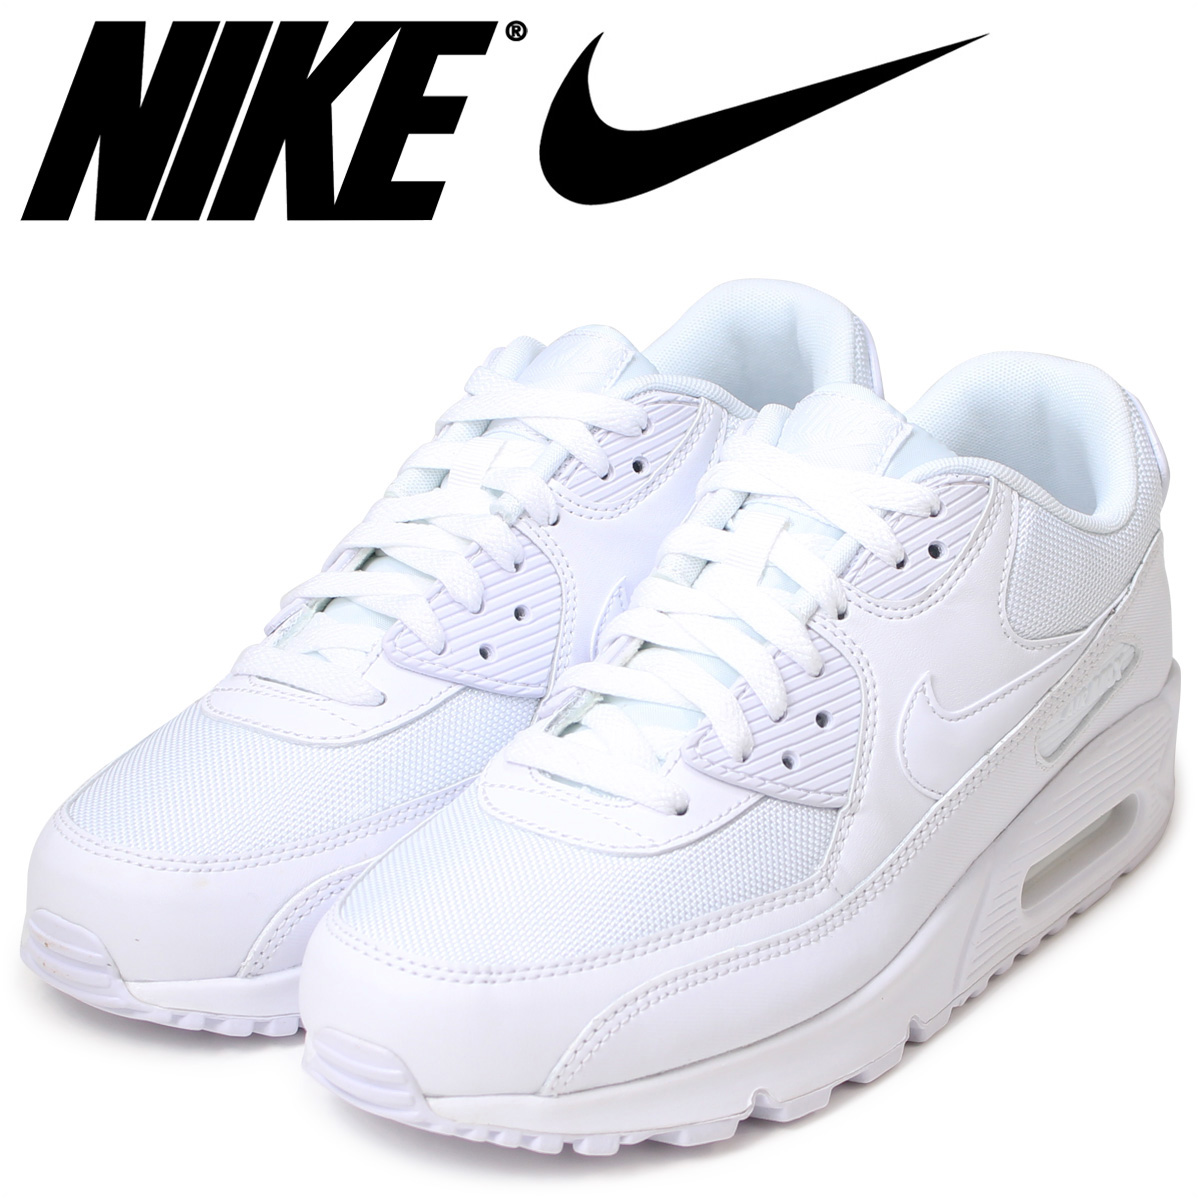 Nike NIKE Air Max 90 essential sneakers men AIR MAX 90 ESSENTIAL 537,384 111 white white